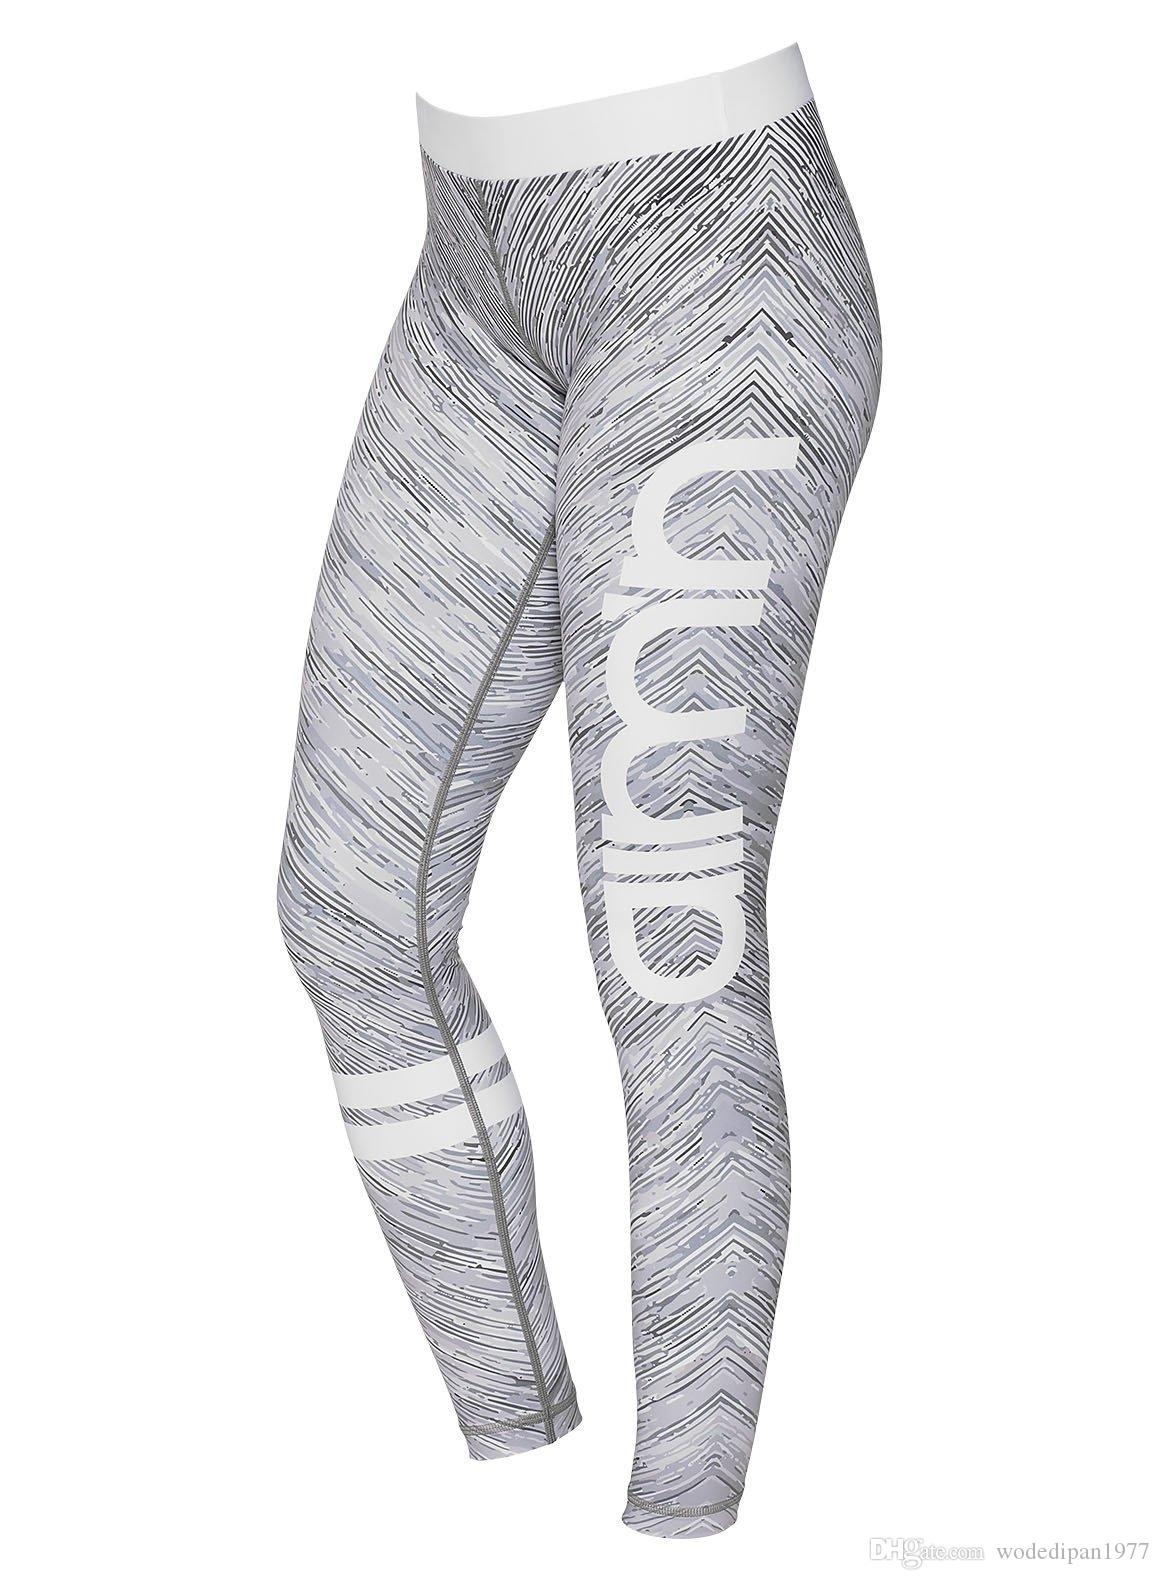 White White Athleisure Broken Athleisure Athleisure Broken Broken Leggings White Leggings Leggings Athleisure Leggings Of7nxwg